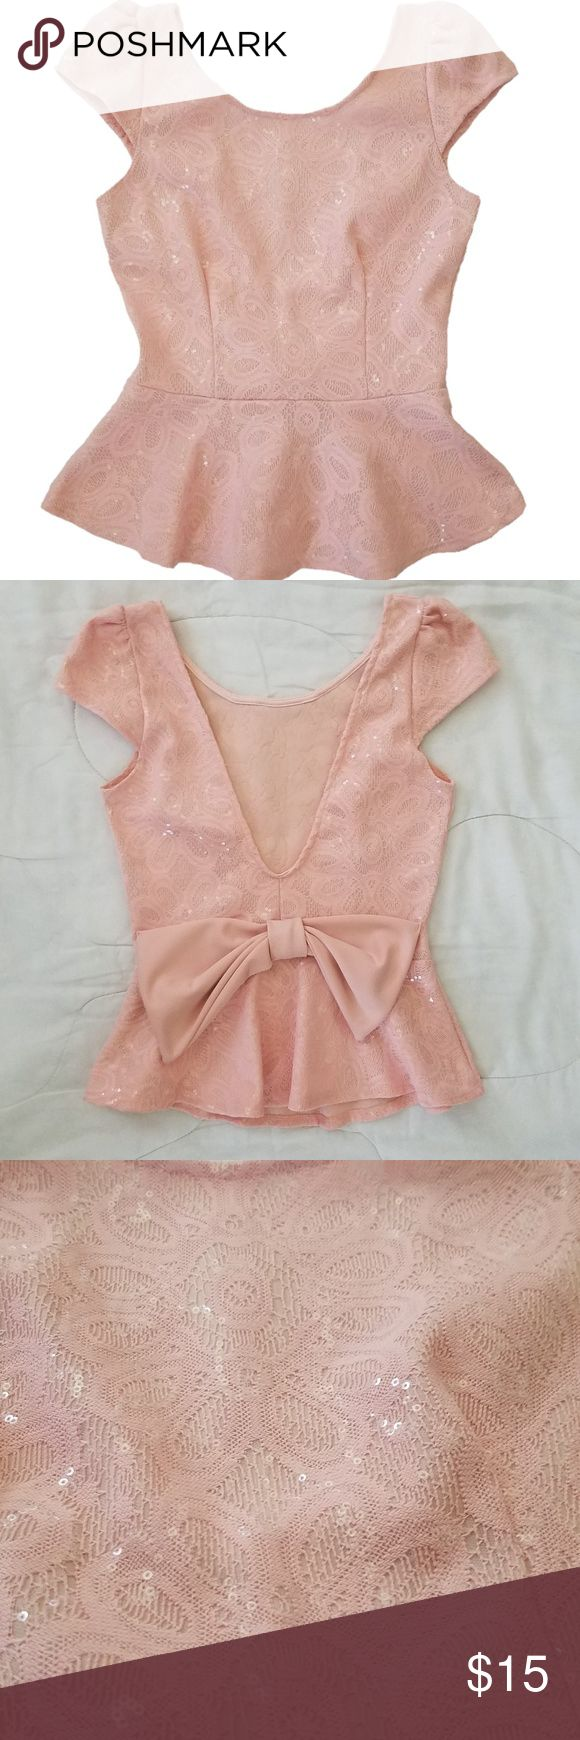 "Papaya Pink Sequin Peplum Top with Bow Great for a night out!  Measurement Chest: 33.5"" Sleeves: 4.5"" Length: 22.75"" Flare: 22""  Material 100% Polyester Papaya Tops Blouses"